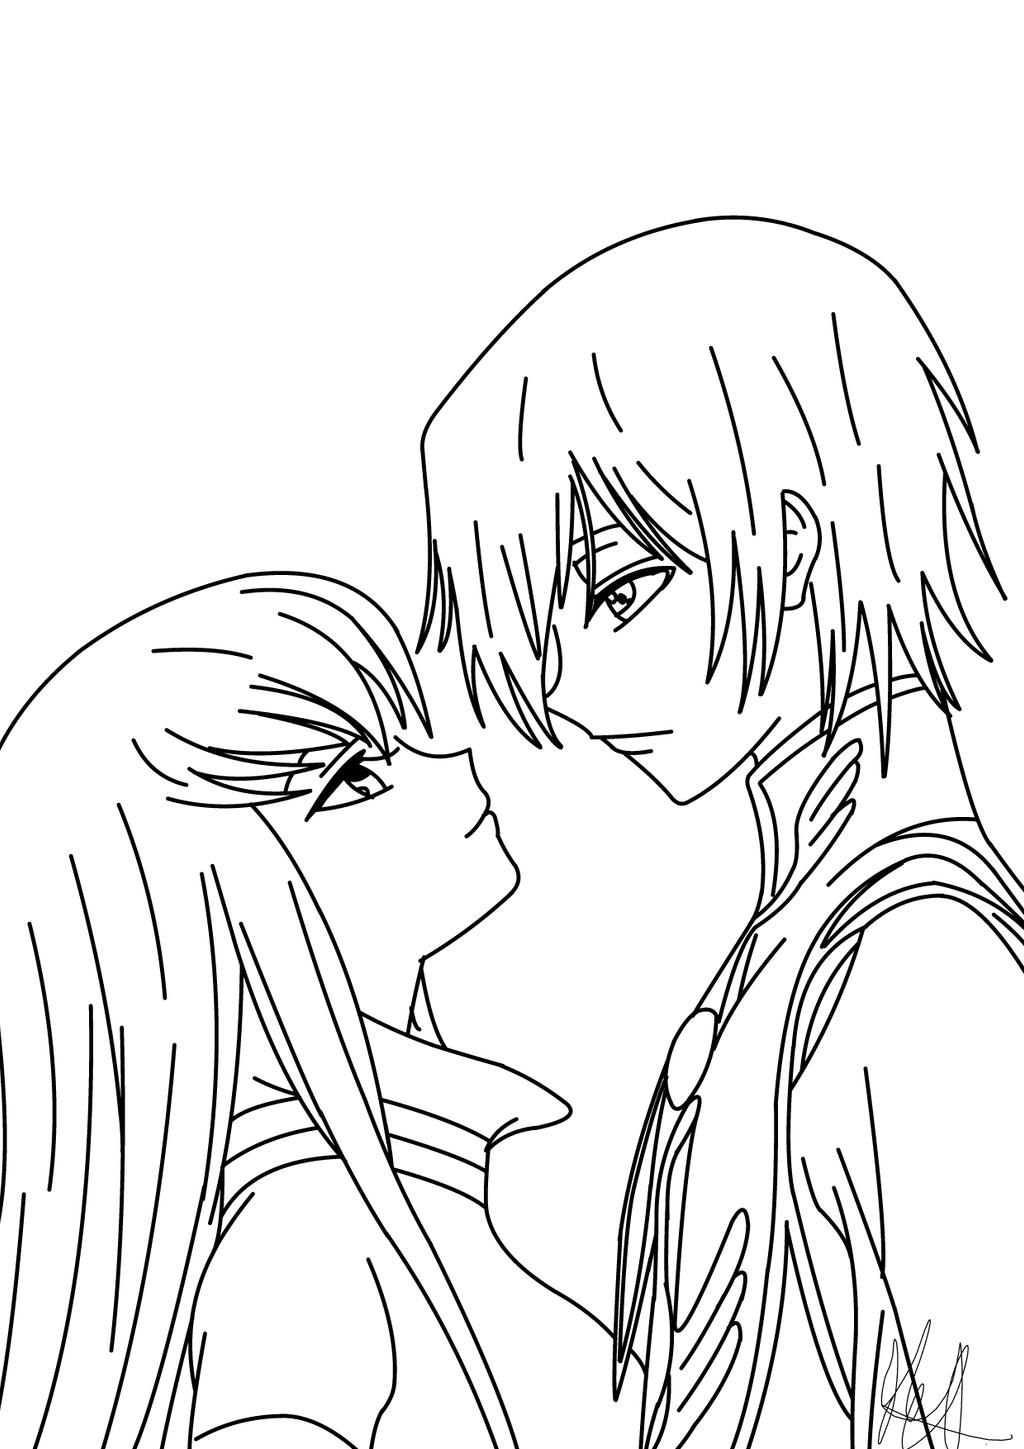 C Drawing Smooth Lines : C lelouch quick line art drawing by farside on